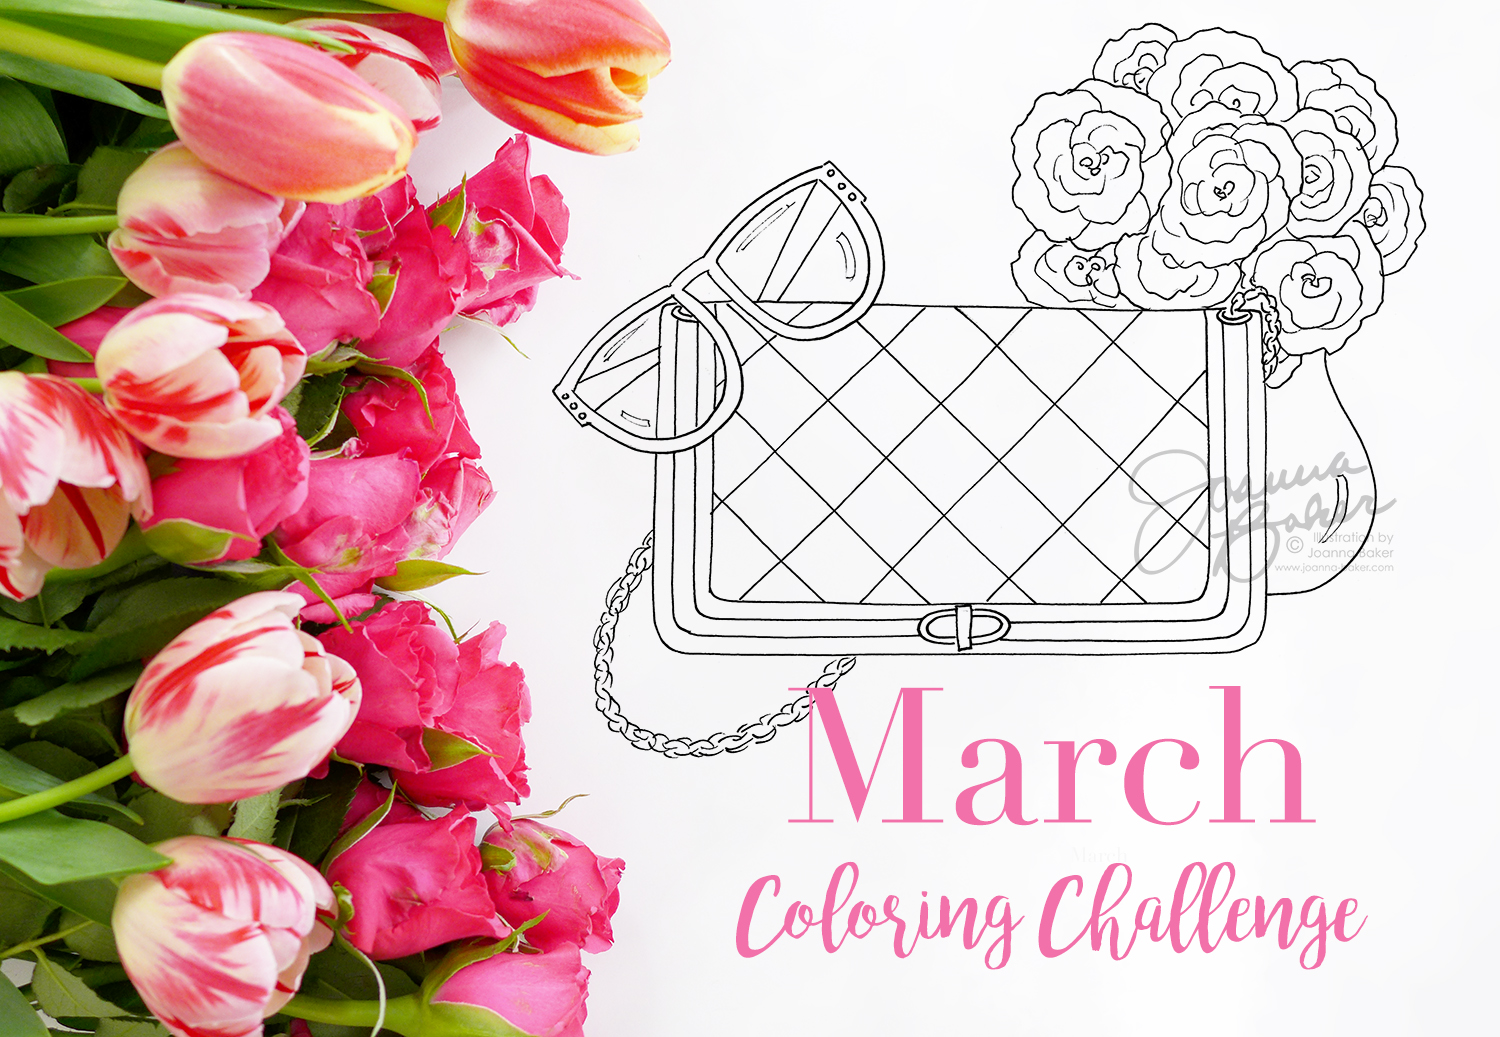 March Coloring Challenge Preview Illustration by Joanna Baker